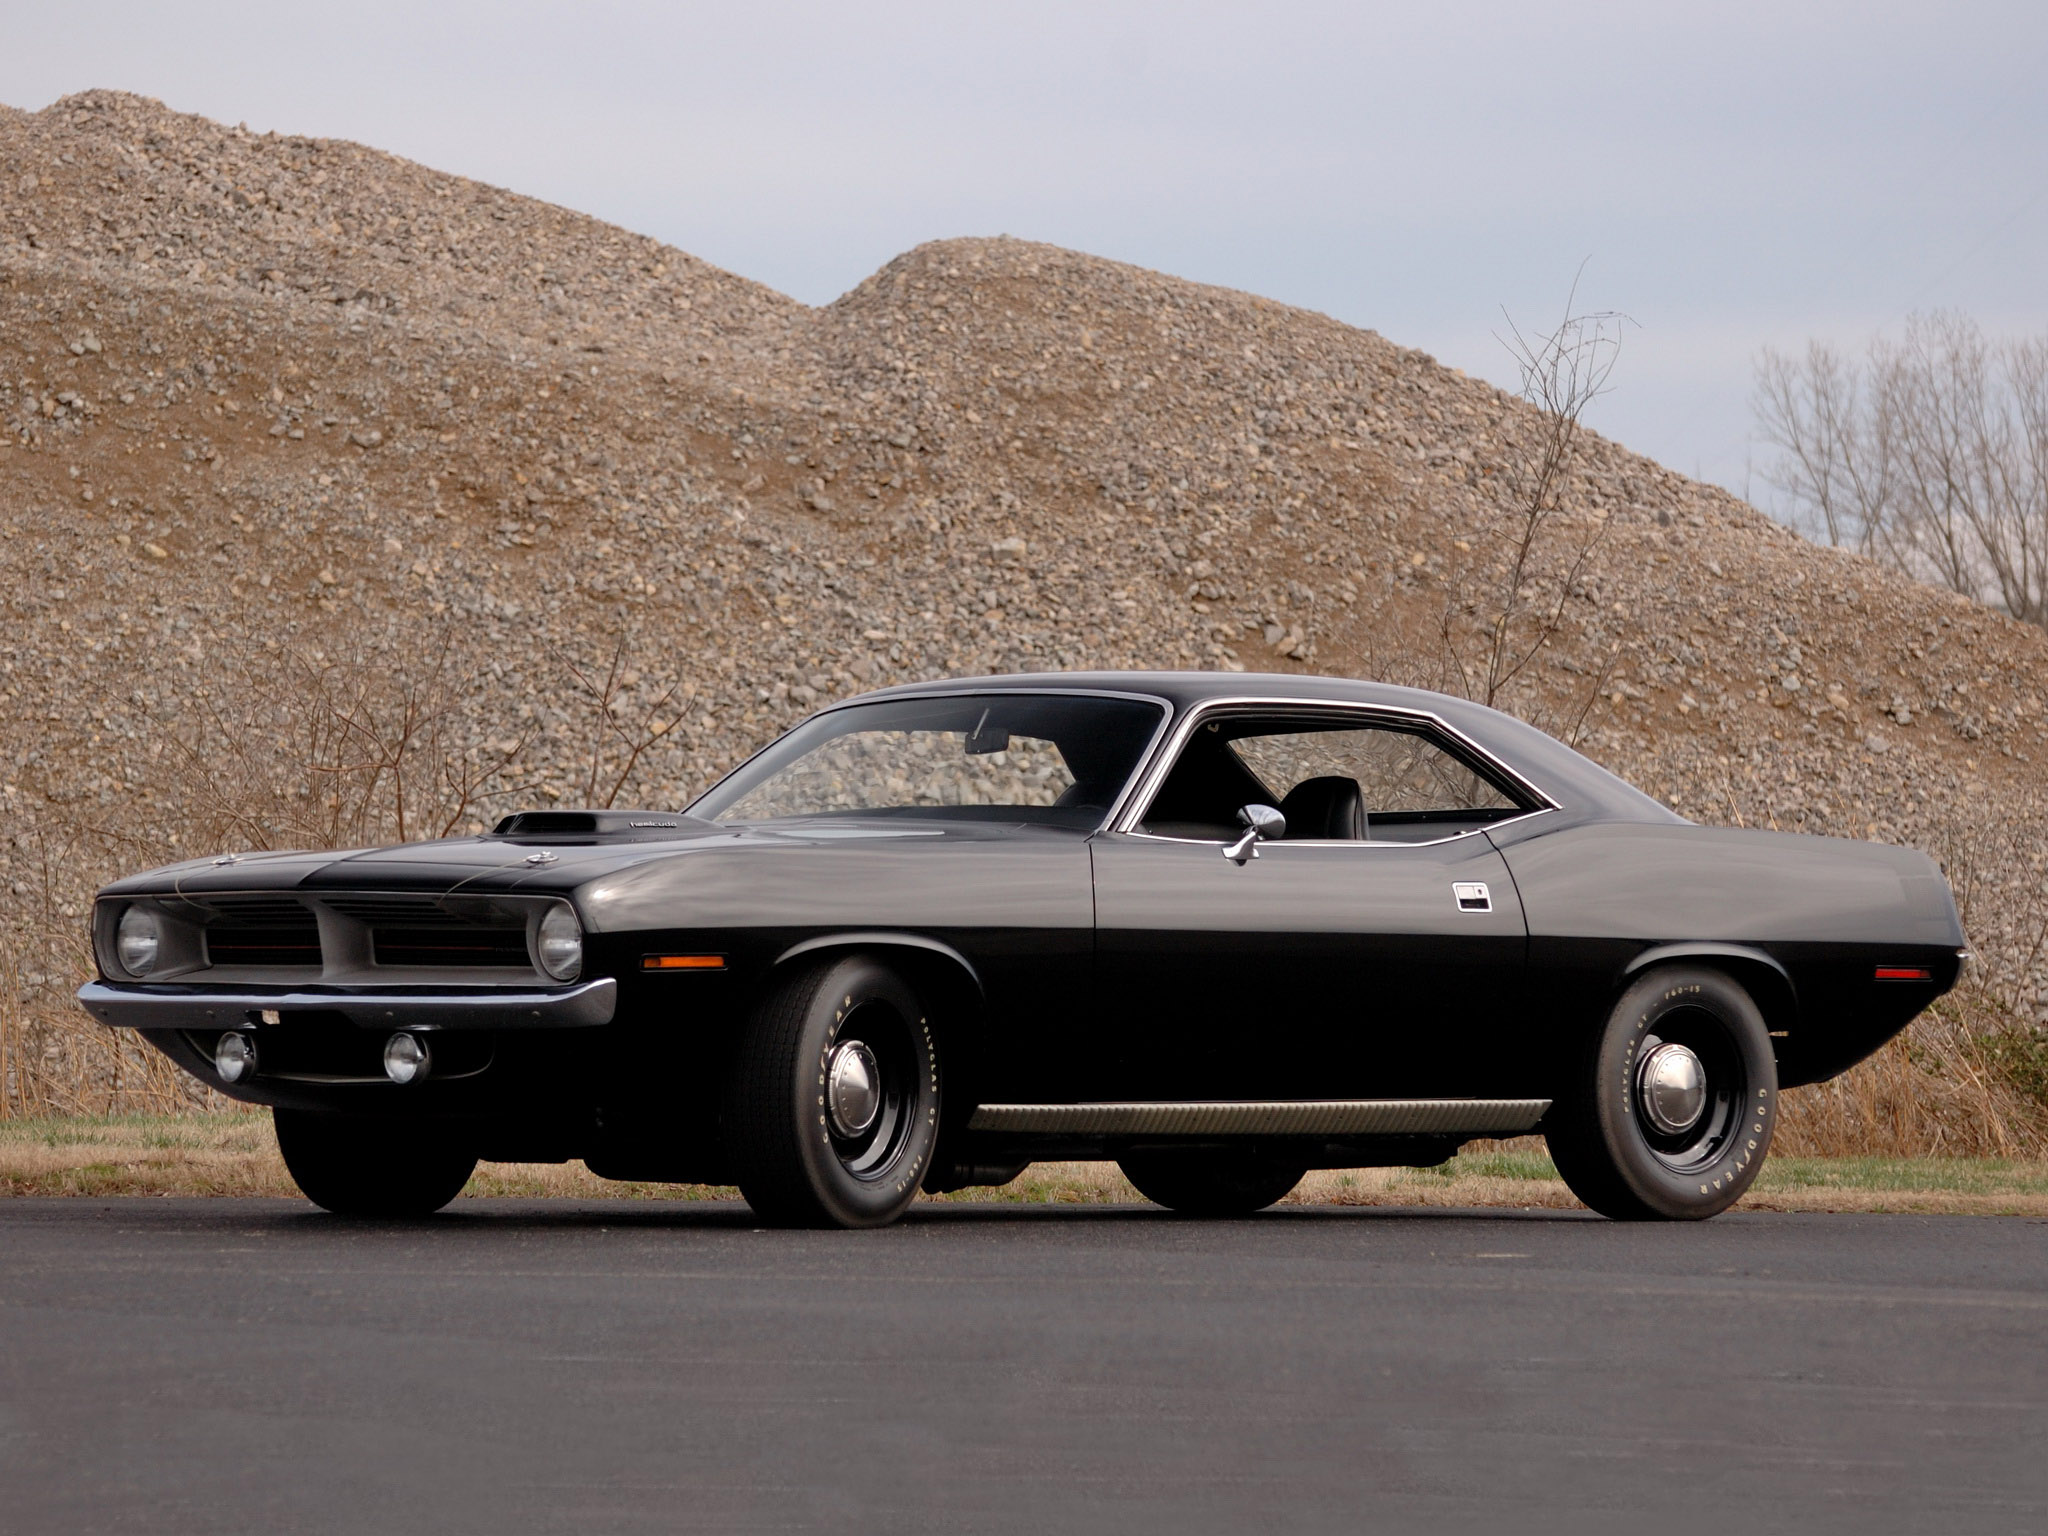 Plymouth hemi cuda 1970 motivation pinterest plymouth mopar and cars